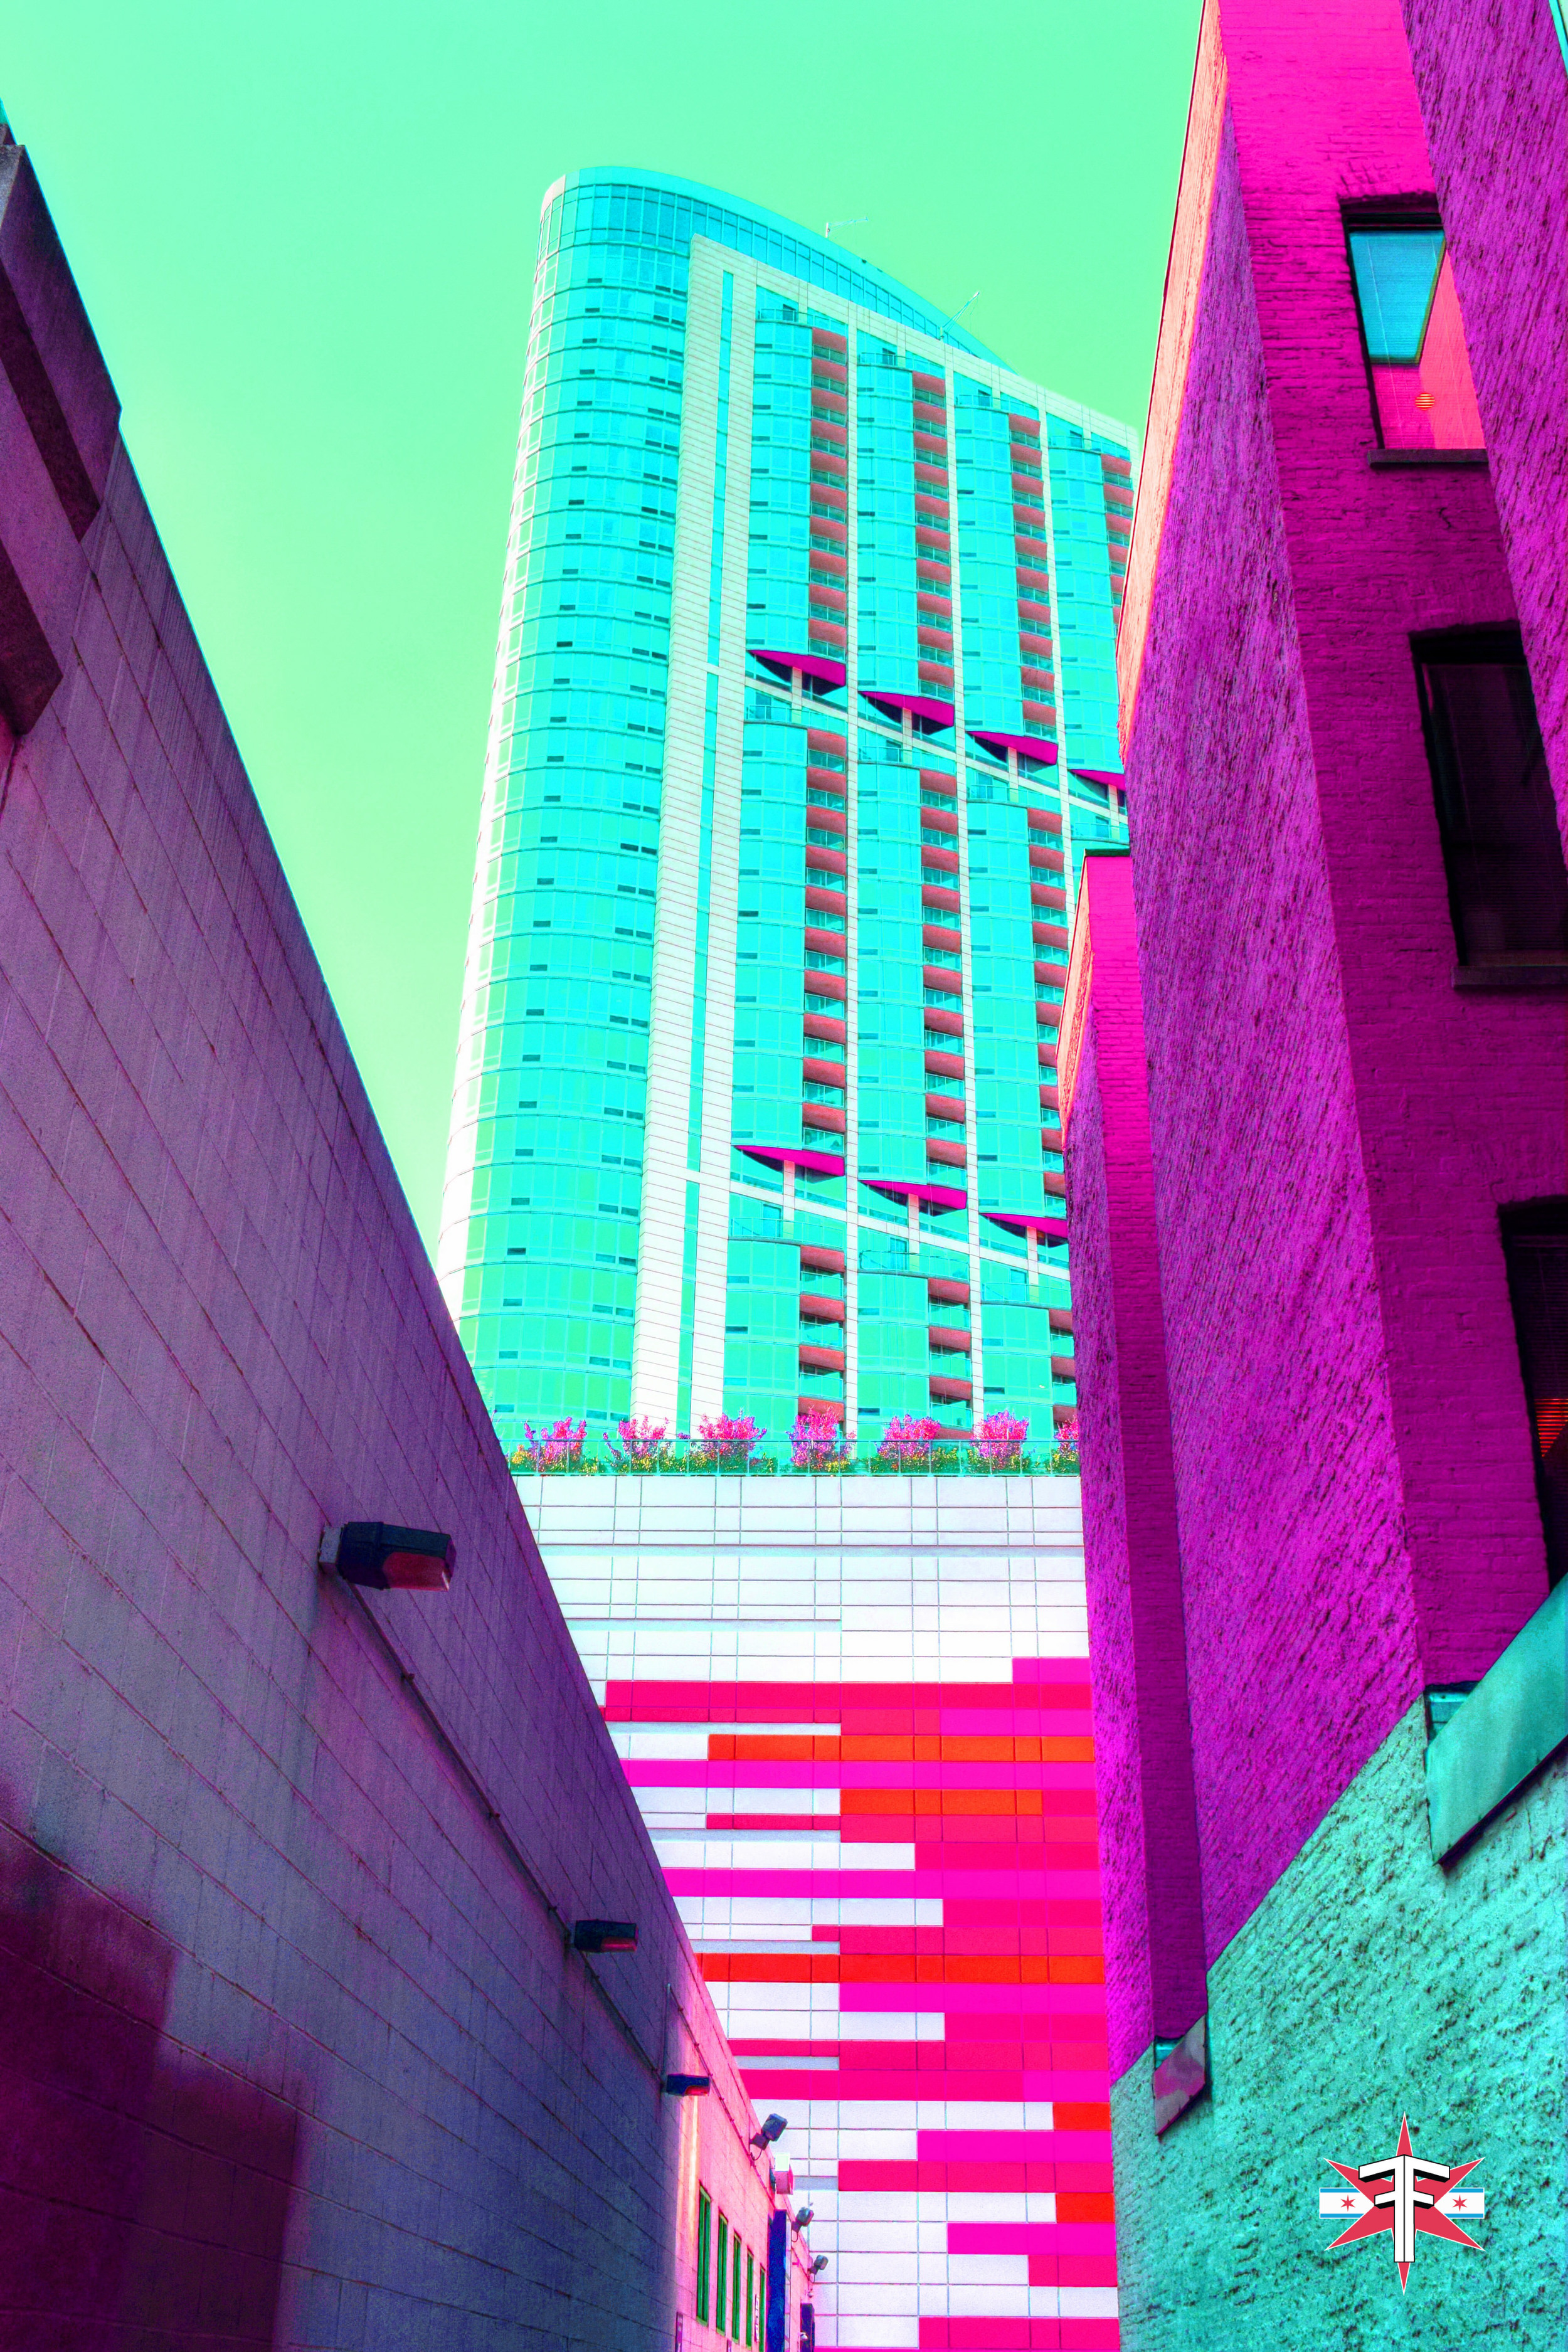 chicago art abstract eric formato photography color travel cityscape architecture saturated citycapes bright vibrant artistic-50-2.jpg